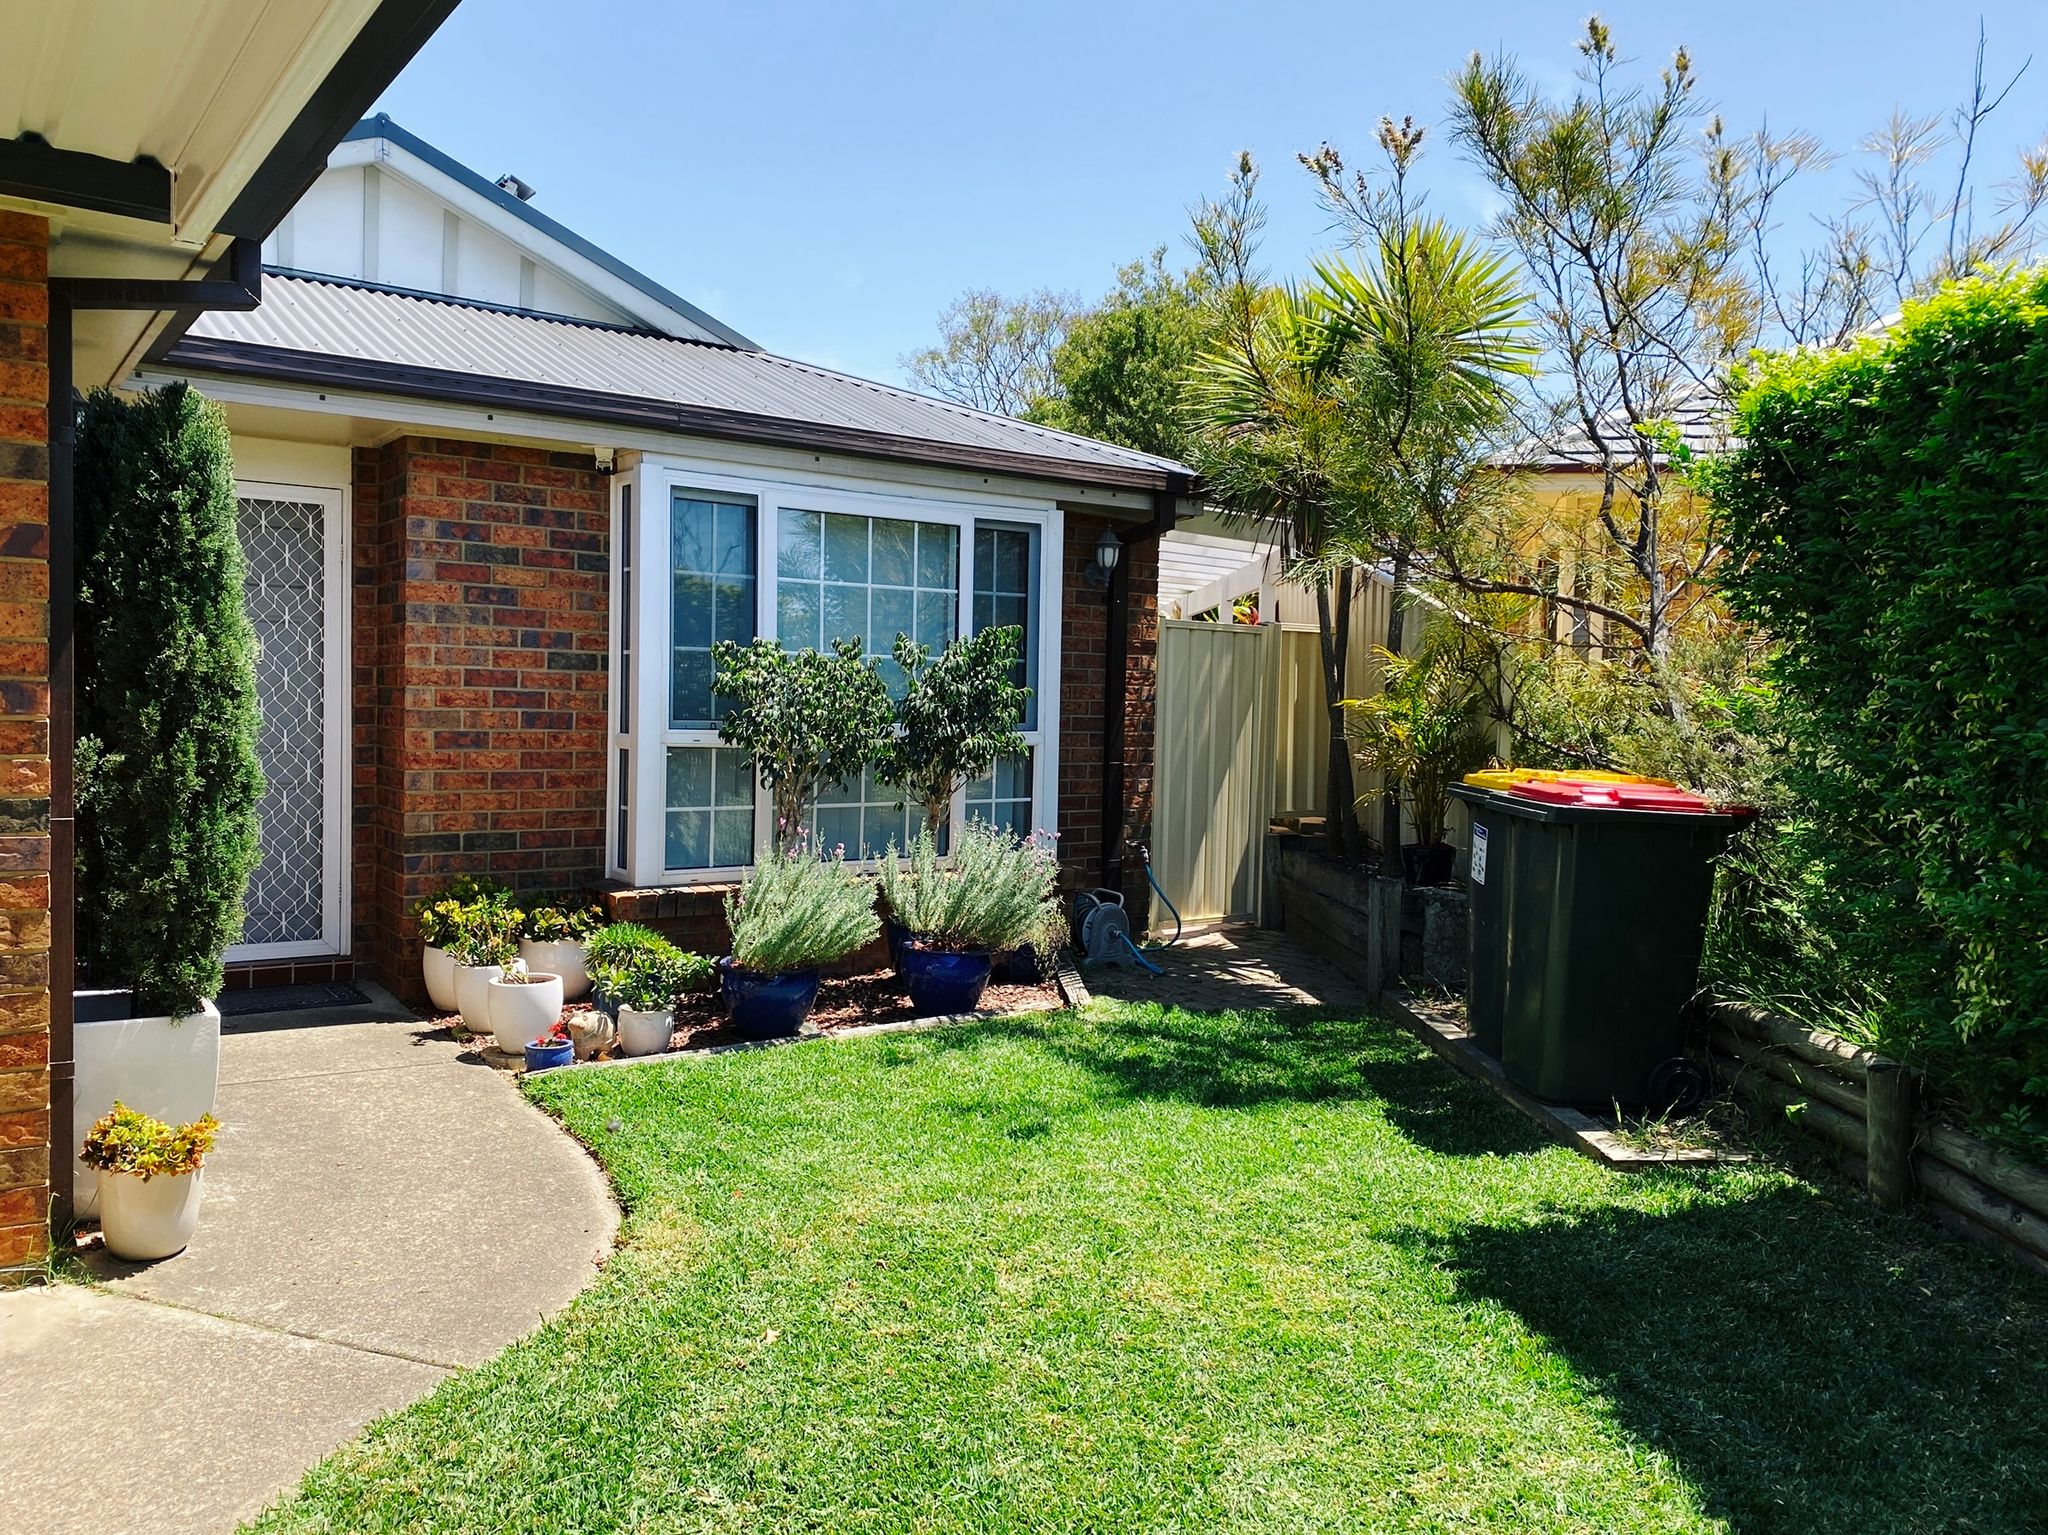 A photo of a section of front yard in front of our house. There's a bay window with a bunch of plants in pots in front of it in a little mulched garden area, and the grass in front of the garden is wonderfully neat and tidy.